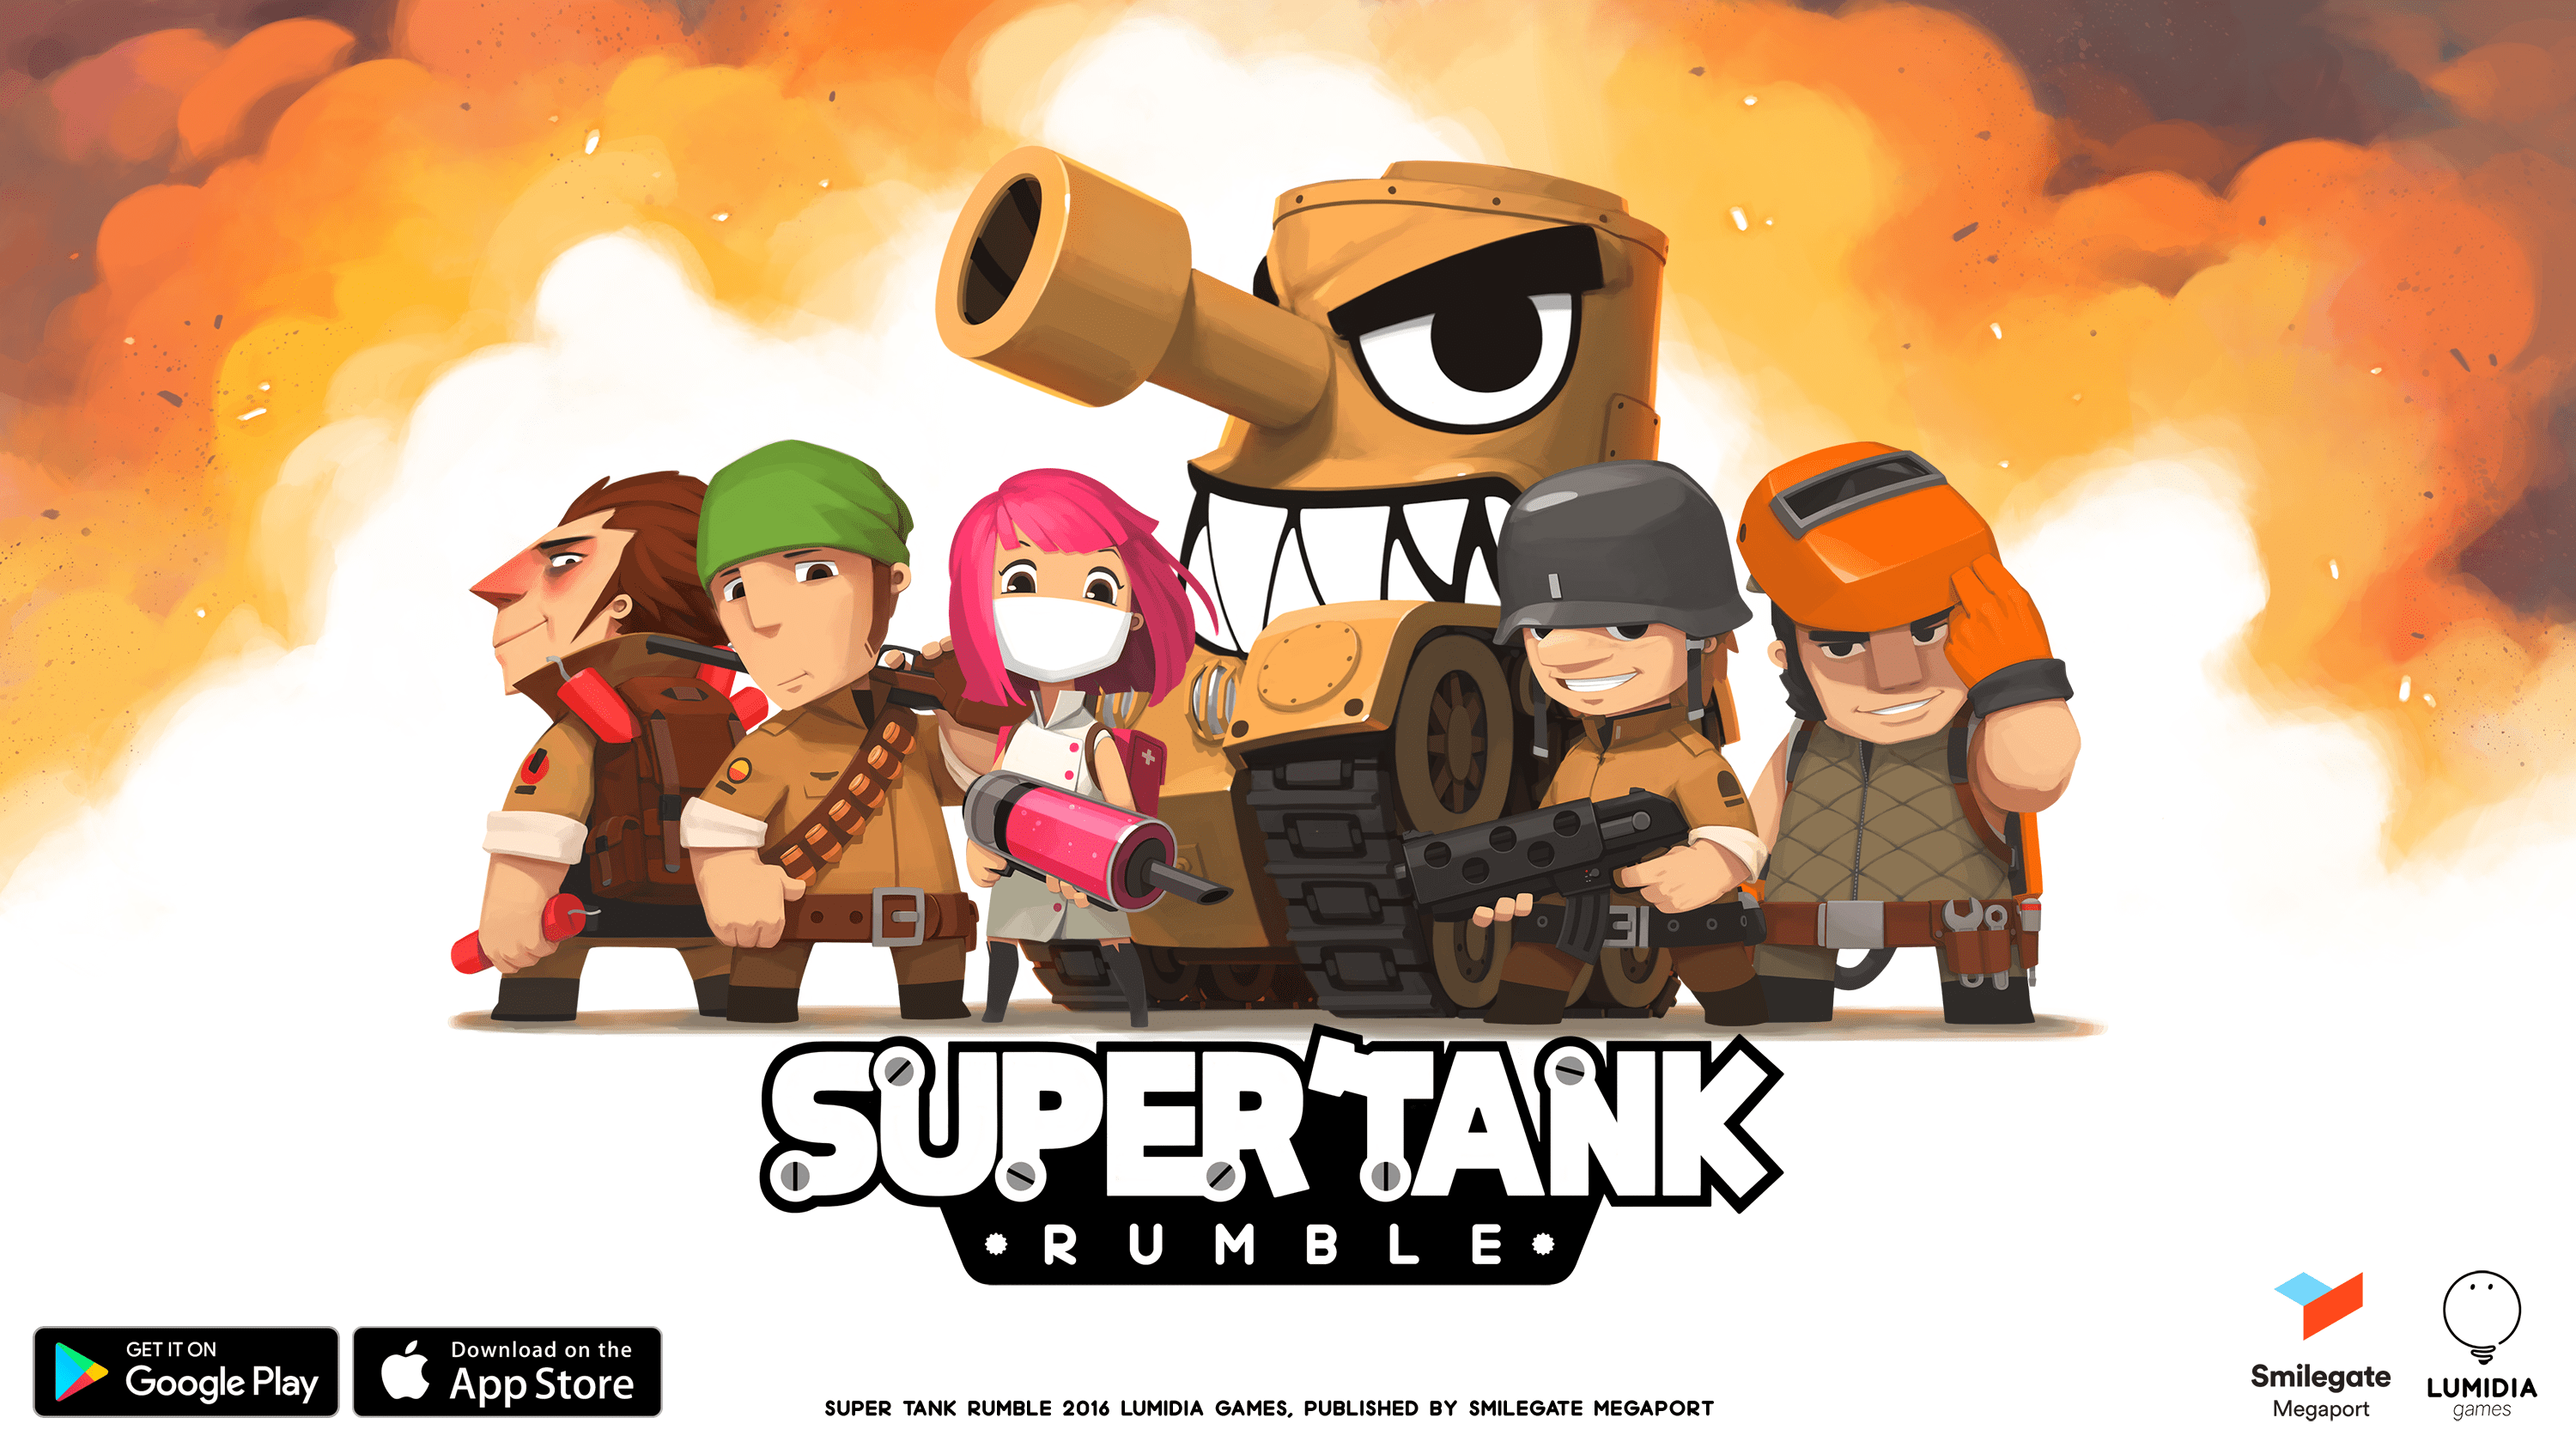 Lumidia Games give us a glimpse into the inspirations behind their sandbox battler Super Tank Rumble